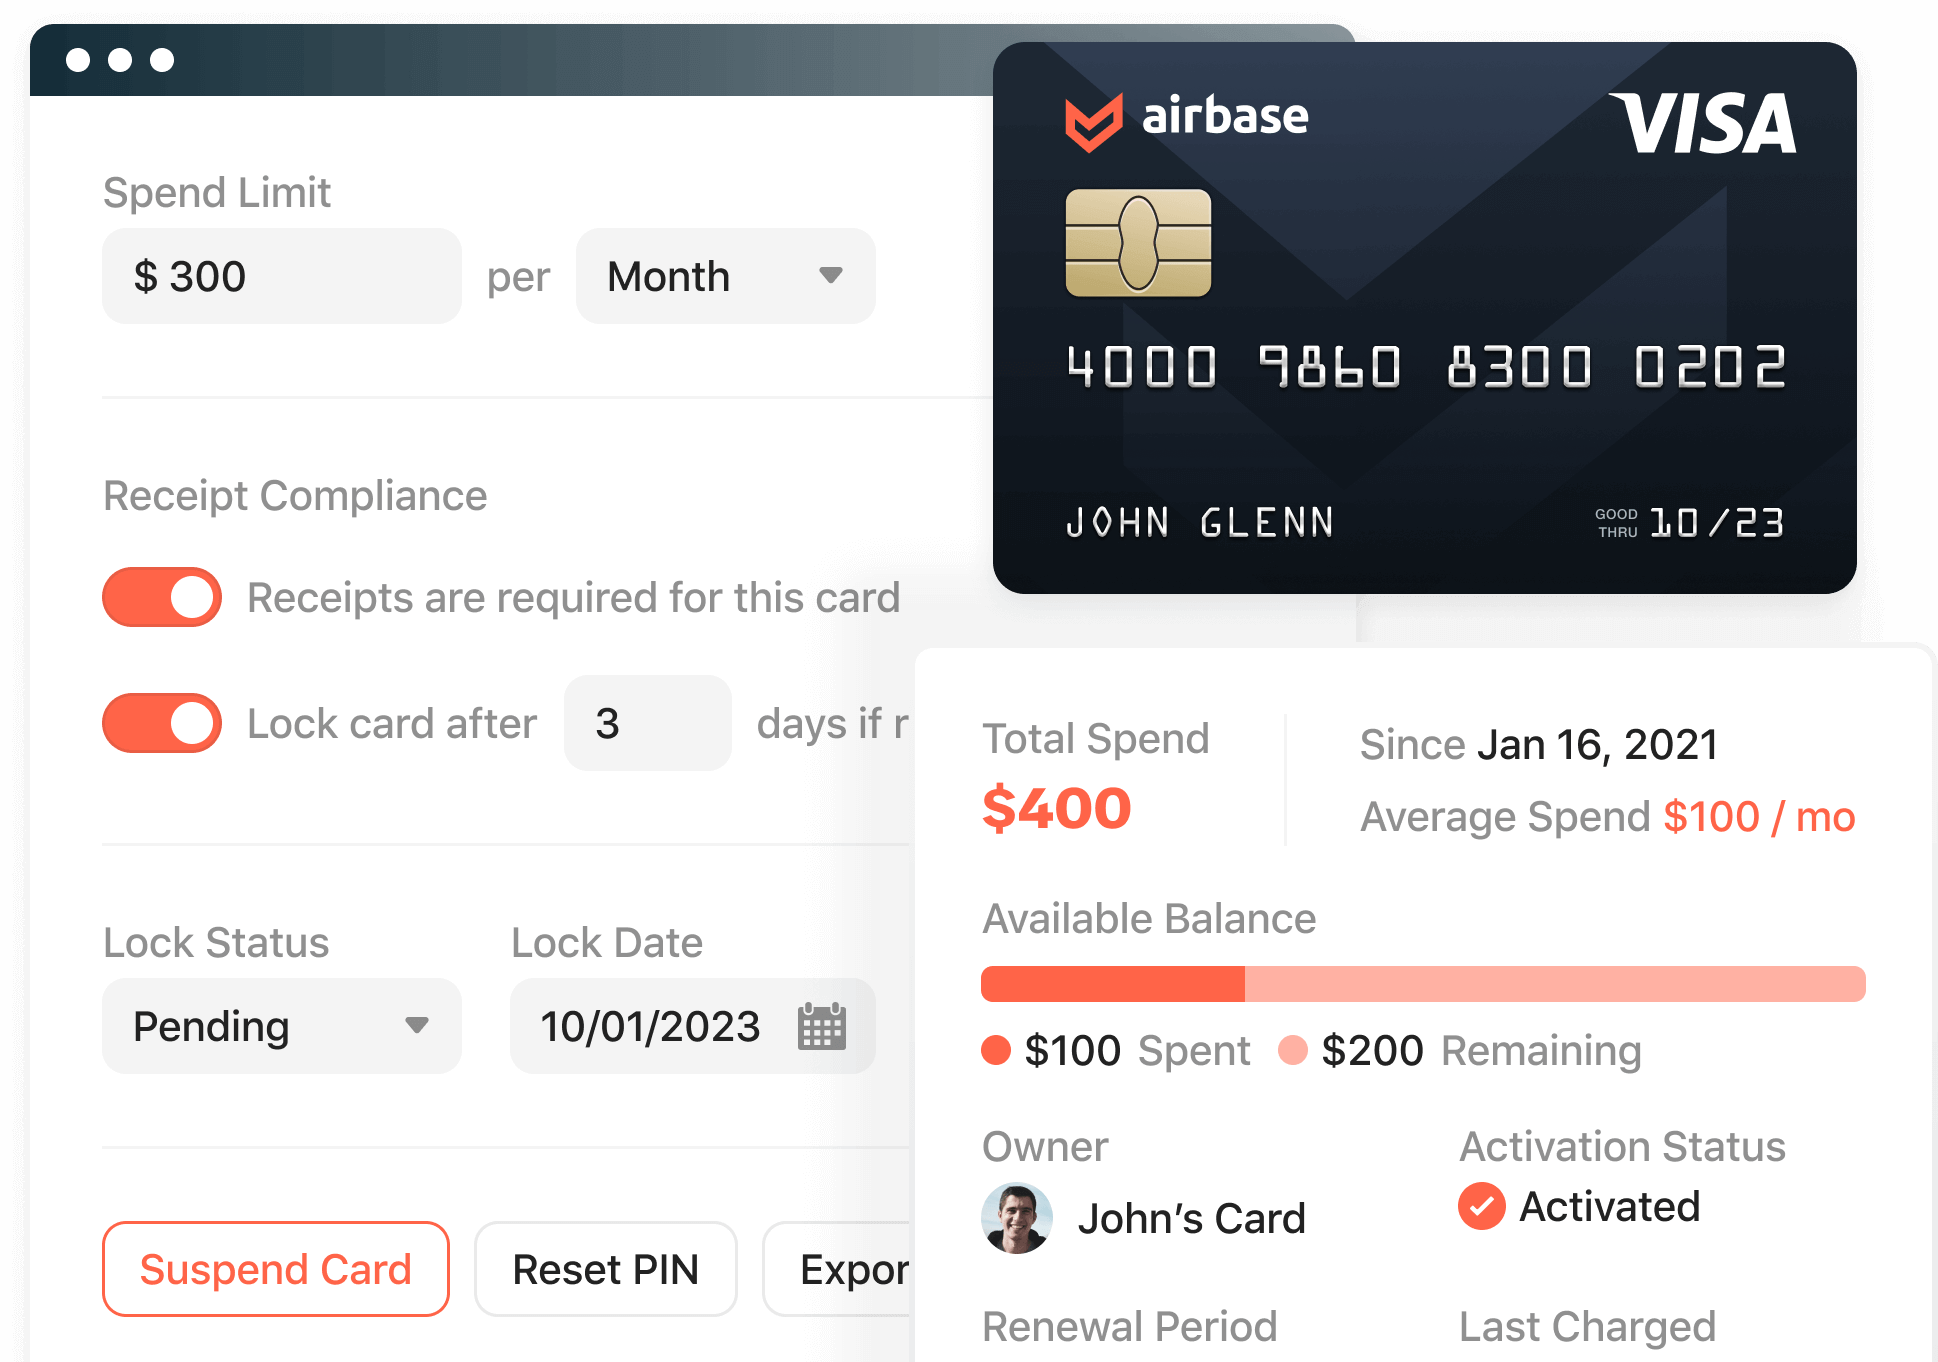 Product screenshot of corporate cards product inside the Airbase platform.